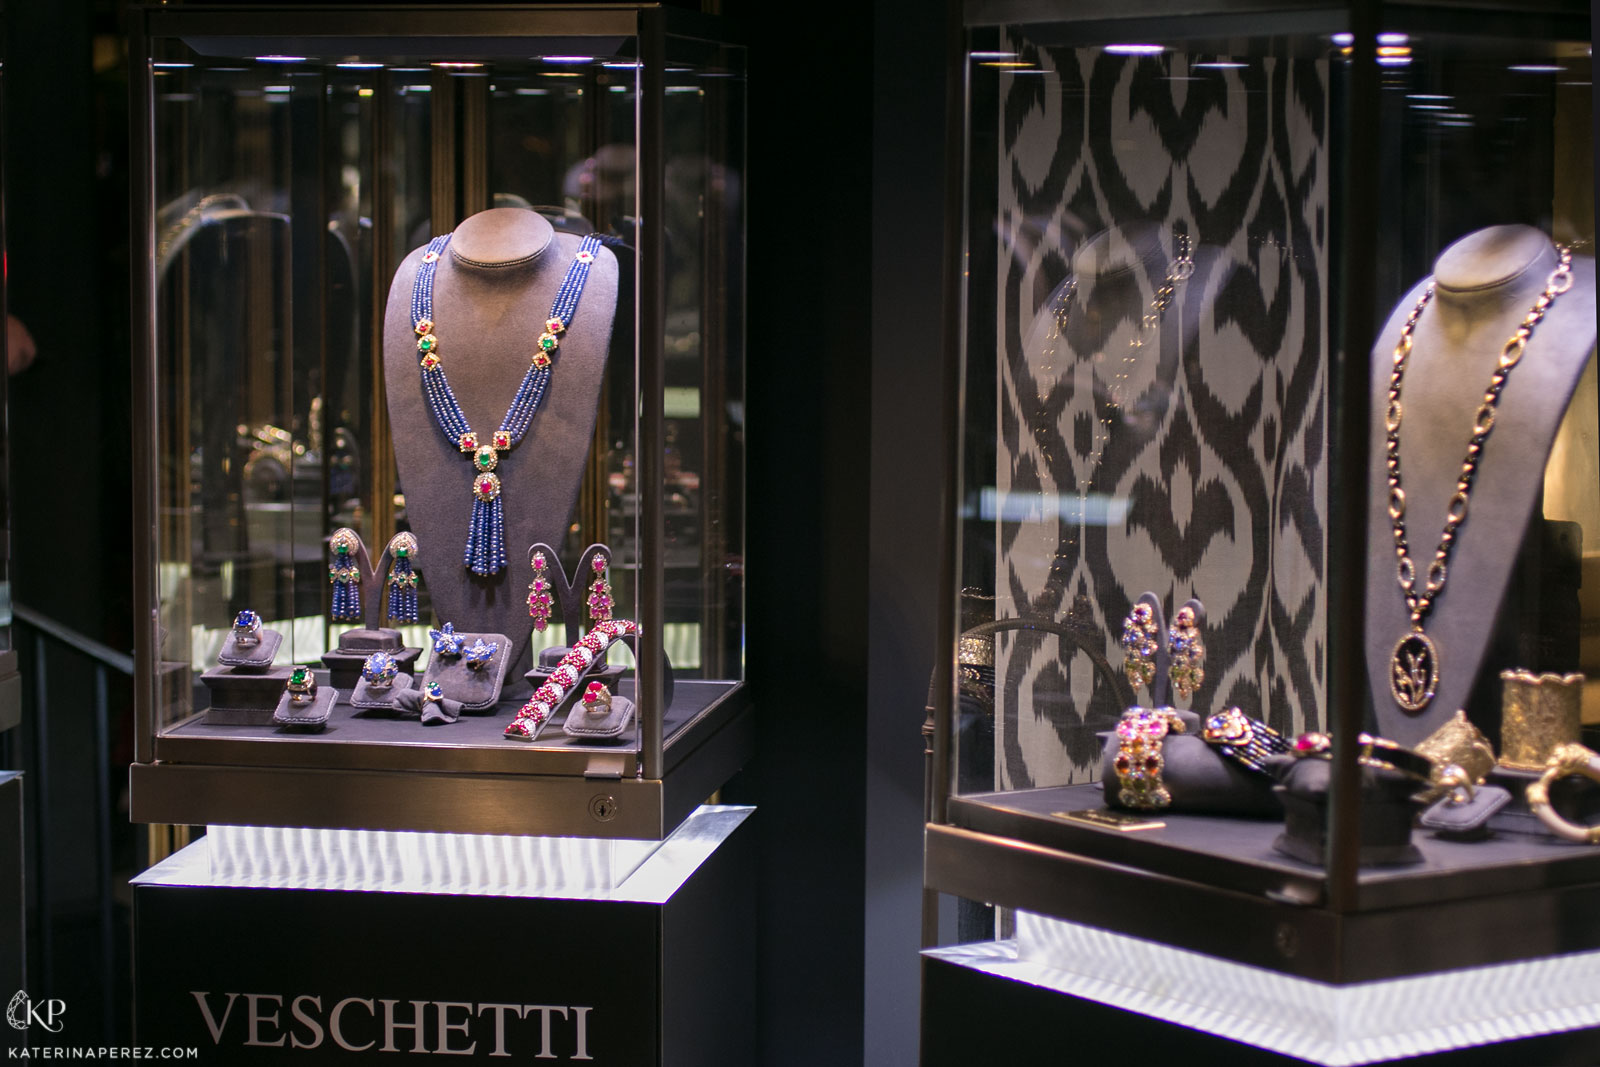 A selection of Veschetti jewellery at the private exhibition